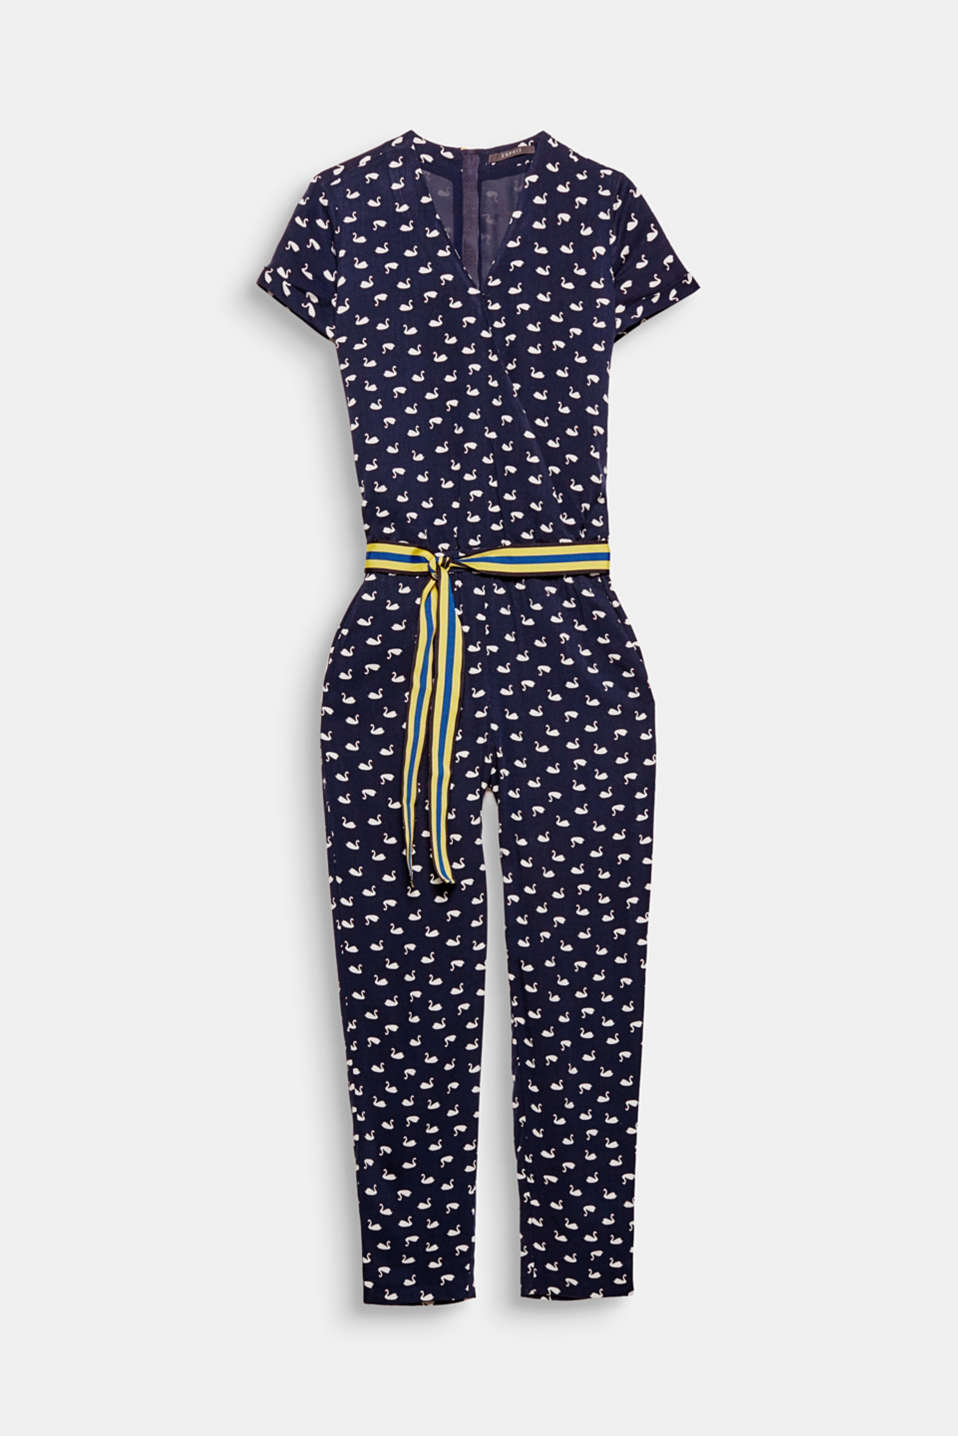 Your good mood piece is here: an airy, lightweight, woven jumpsuit with a stylish swan print, striped grosgrain ribbon and contrasting zip at the back!